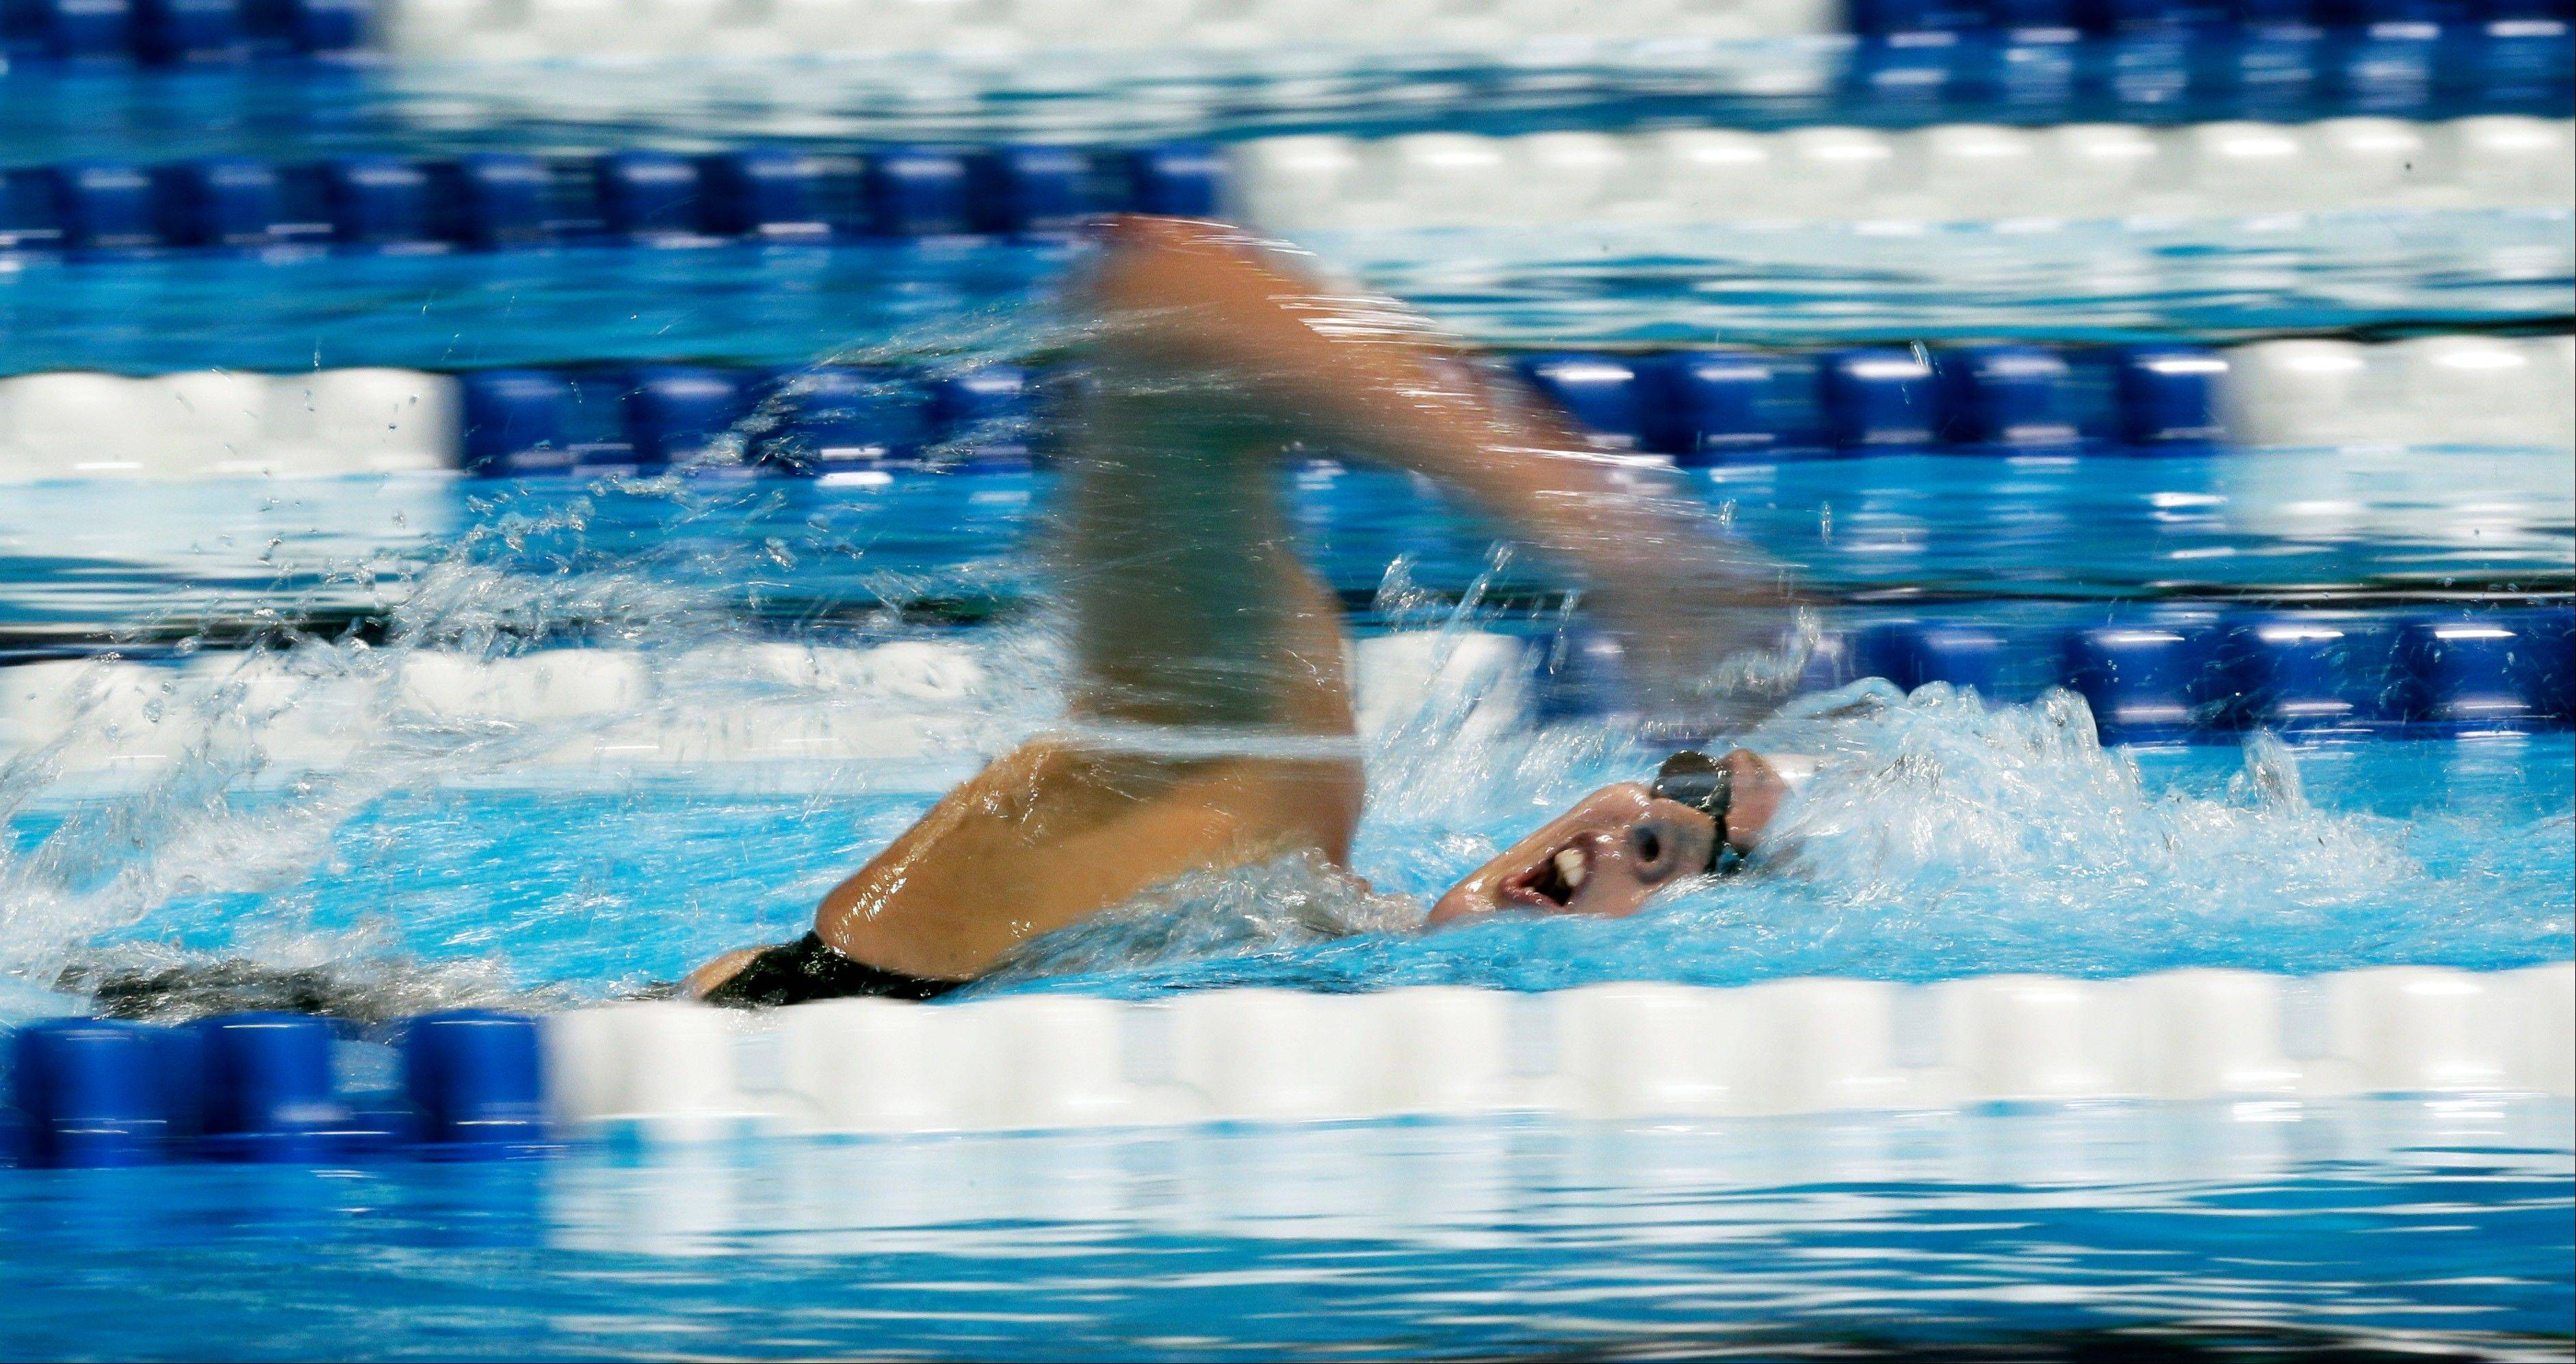 Allison Schmitt swims to victory in the women's 400-meter freestyle final at the U.S. Olympic swimming trials Tuesday.